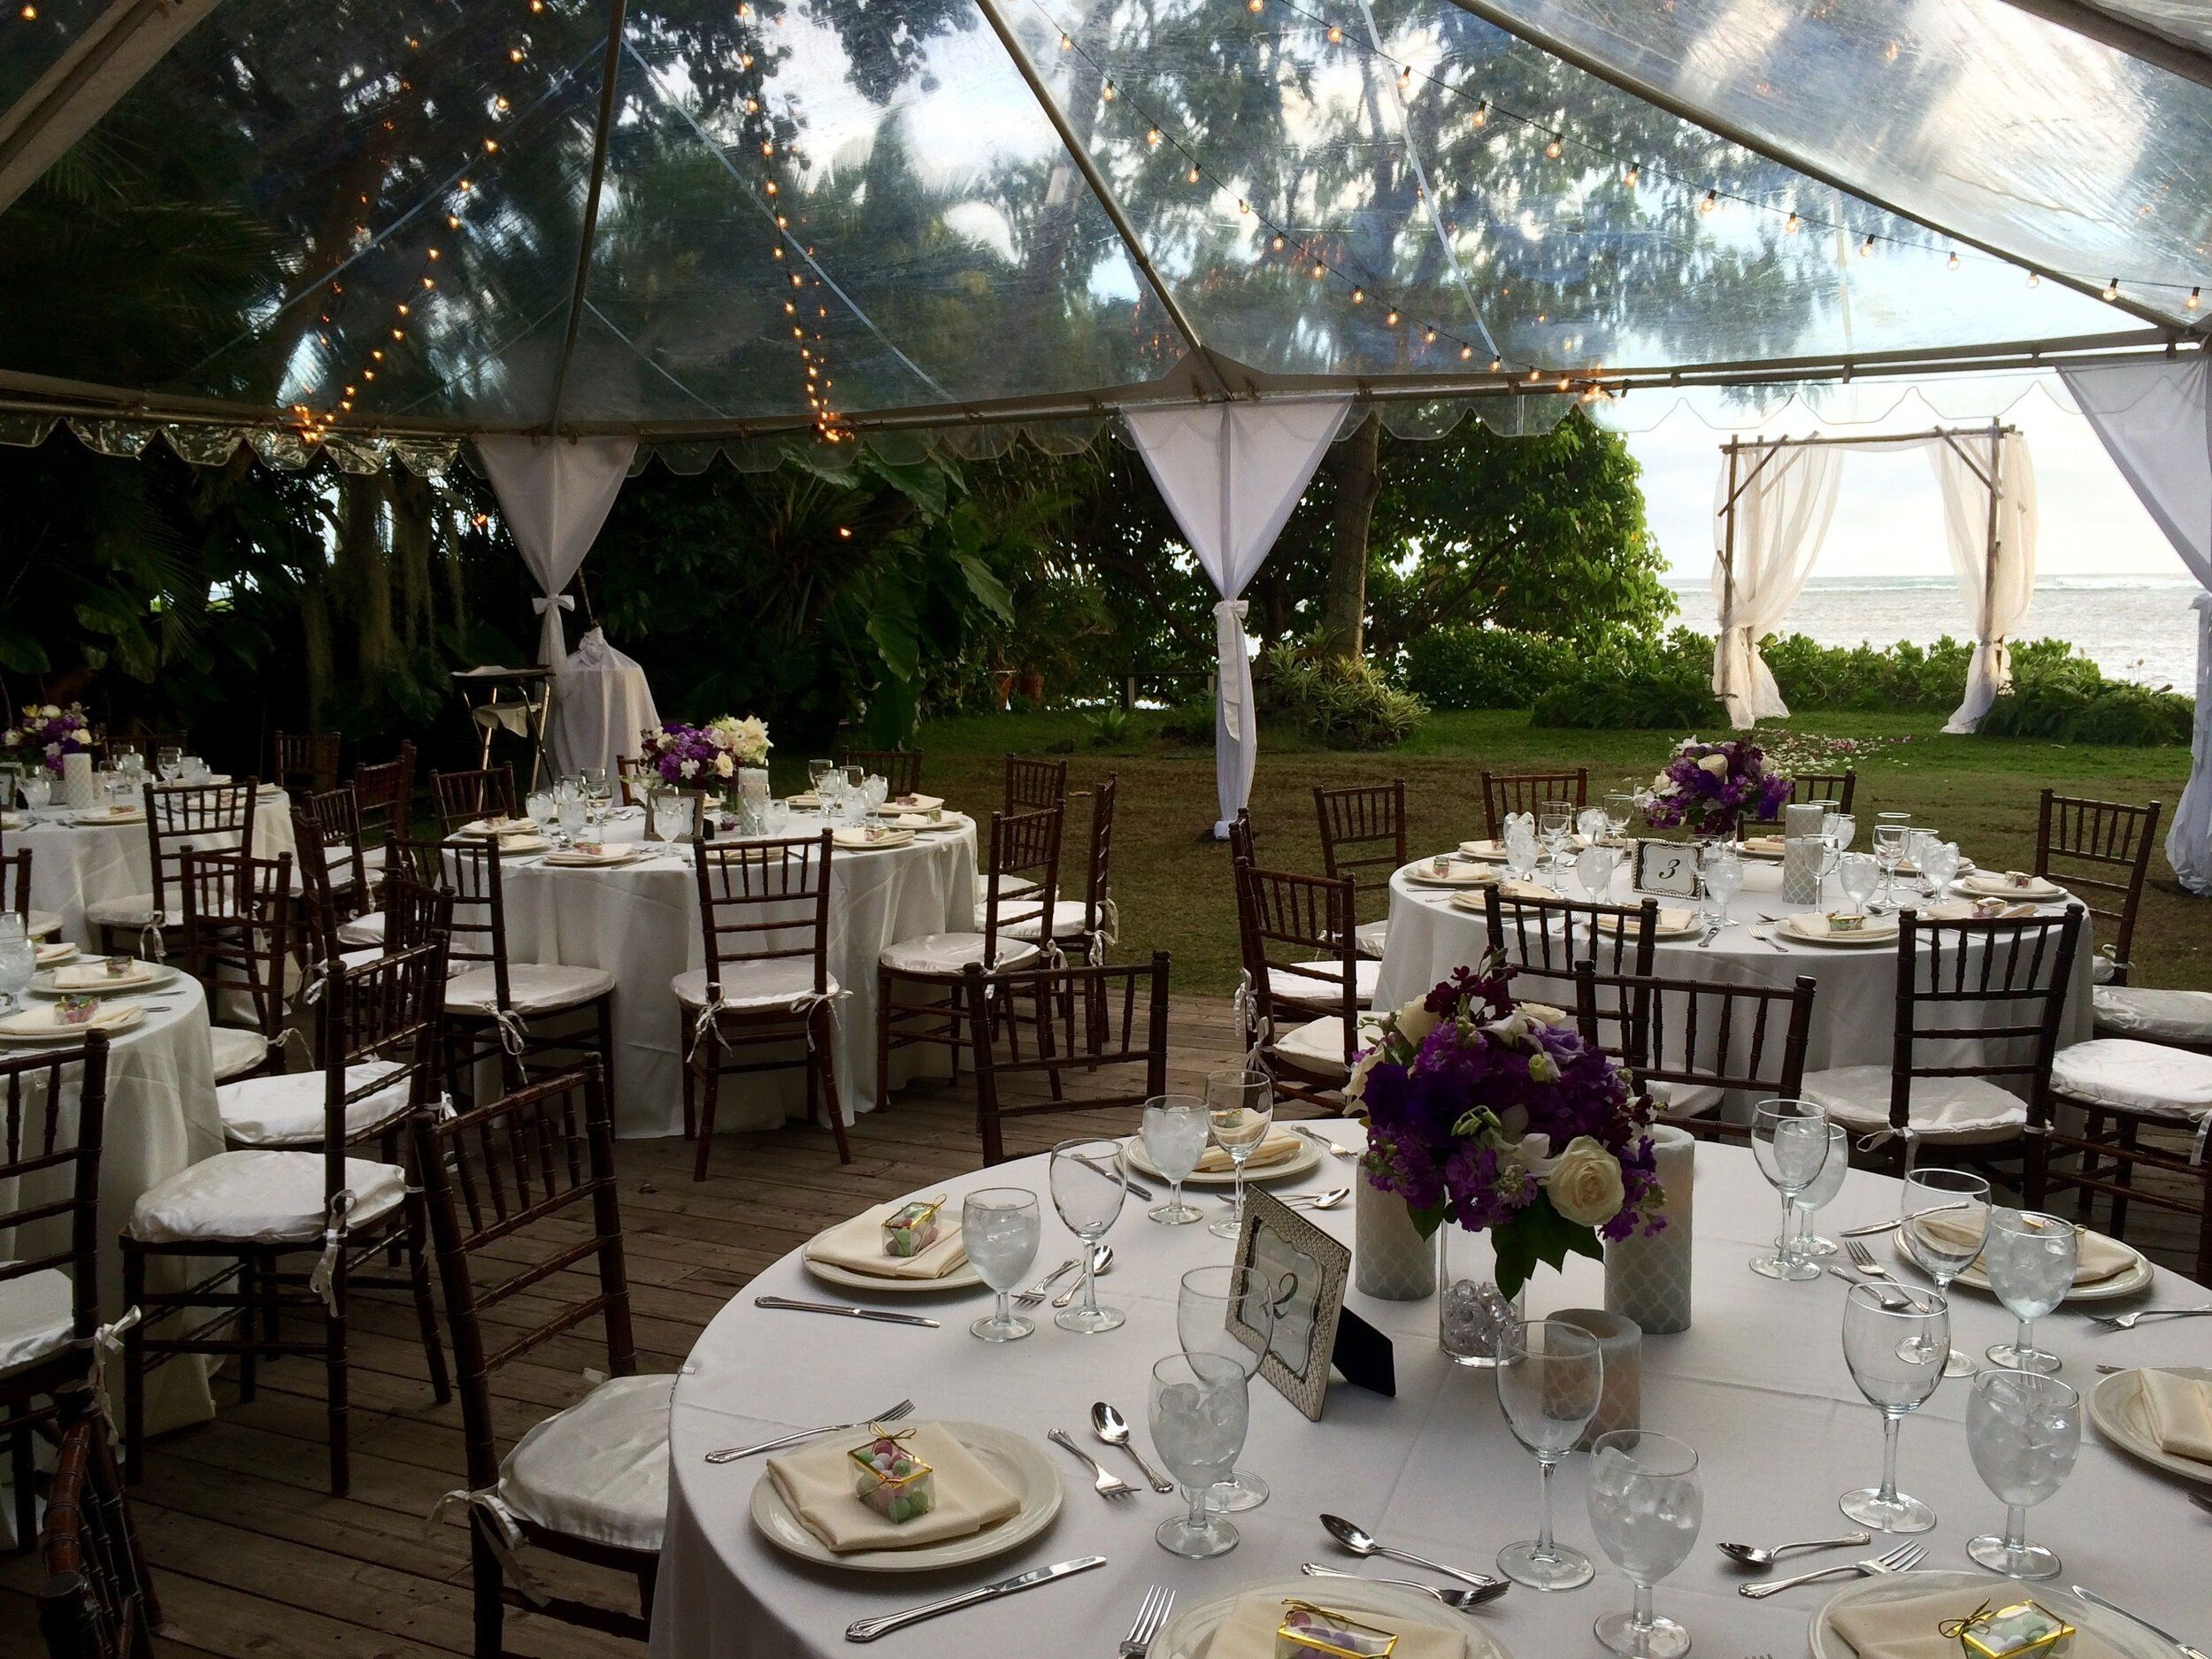 Intimate Garden Wedding Reception With Clear Top Tent In 2020 Small Garden Wedding Small Outdoor Wedding Garden Wedding Reception